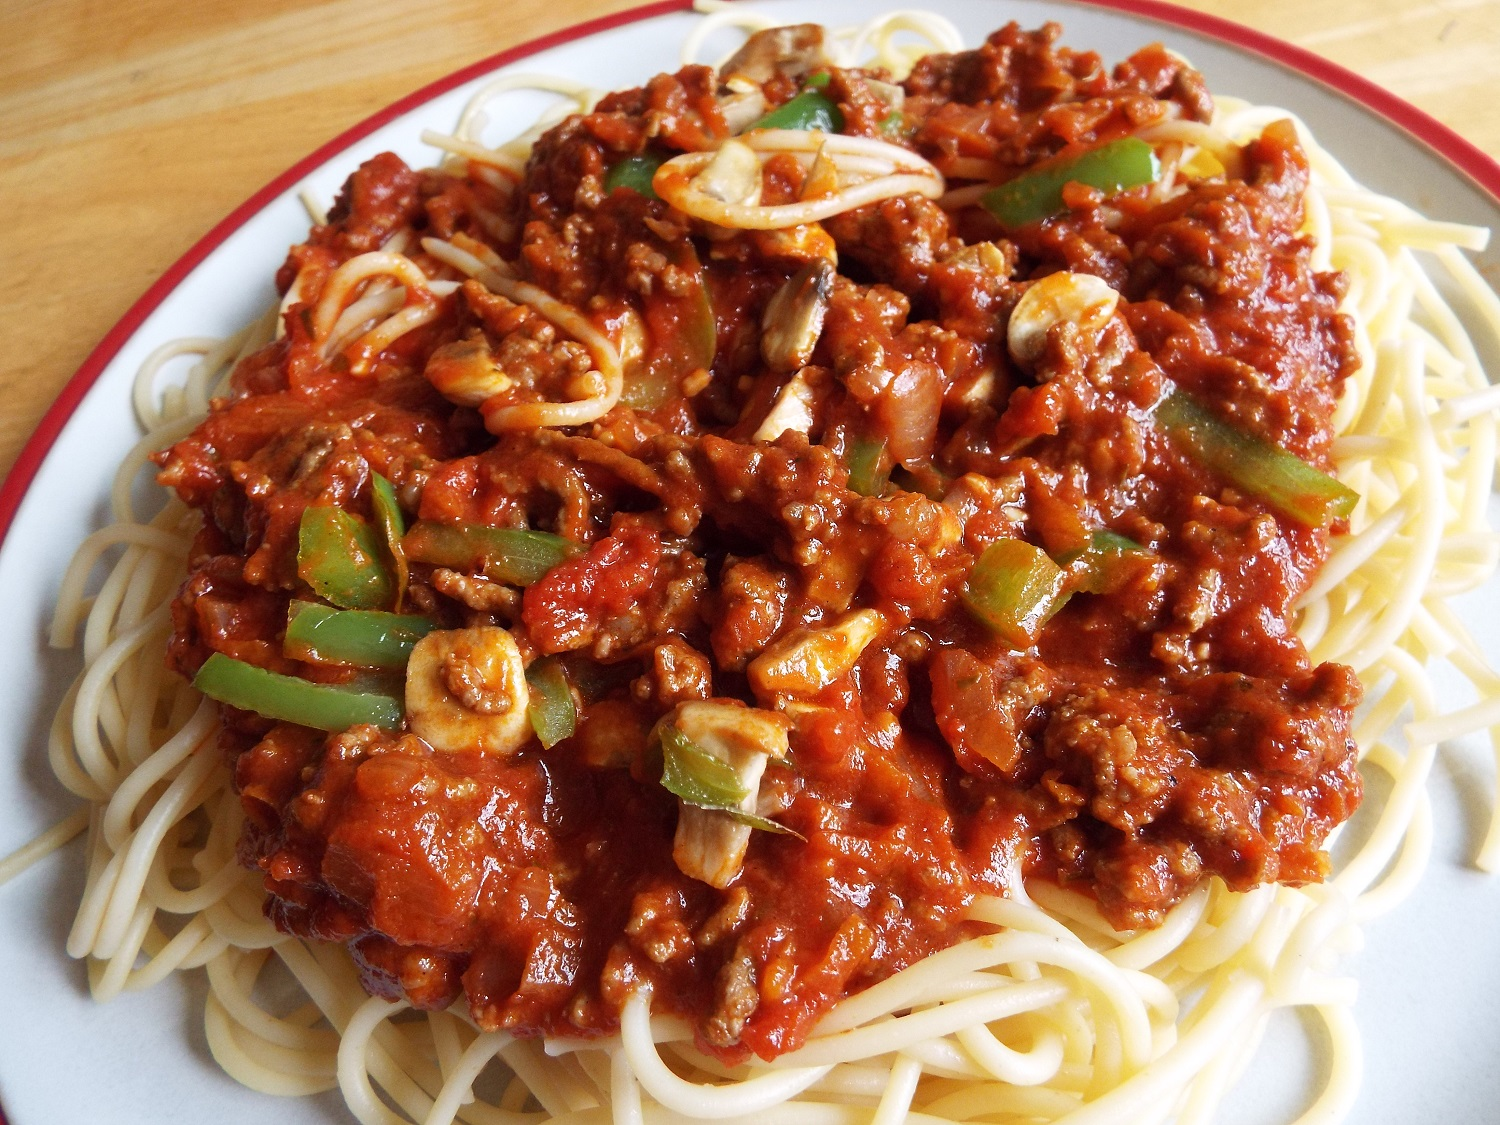 Spaghetti Bolognese - A dig classic - cook a big pot of spaghetti or pasta; and in another big pot fry chopped onion, and add minced beef or turkey, or soya or lentils. Add mixed herbs, garlic, chopped vegetables and tinned tomatoes.This plate of food uses beef mince, and green peppers and mushrooms. You can also use carrots, celery, courgettes and lentils. Seasoning can include a dash of Worcestershire sauce for that garum experience.